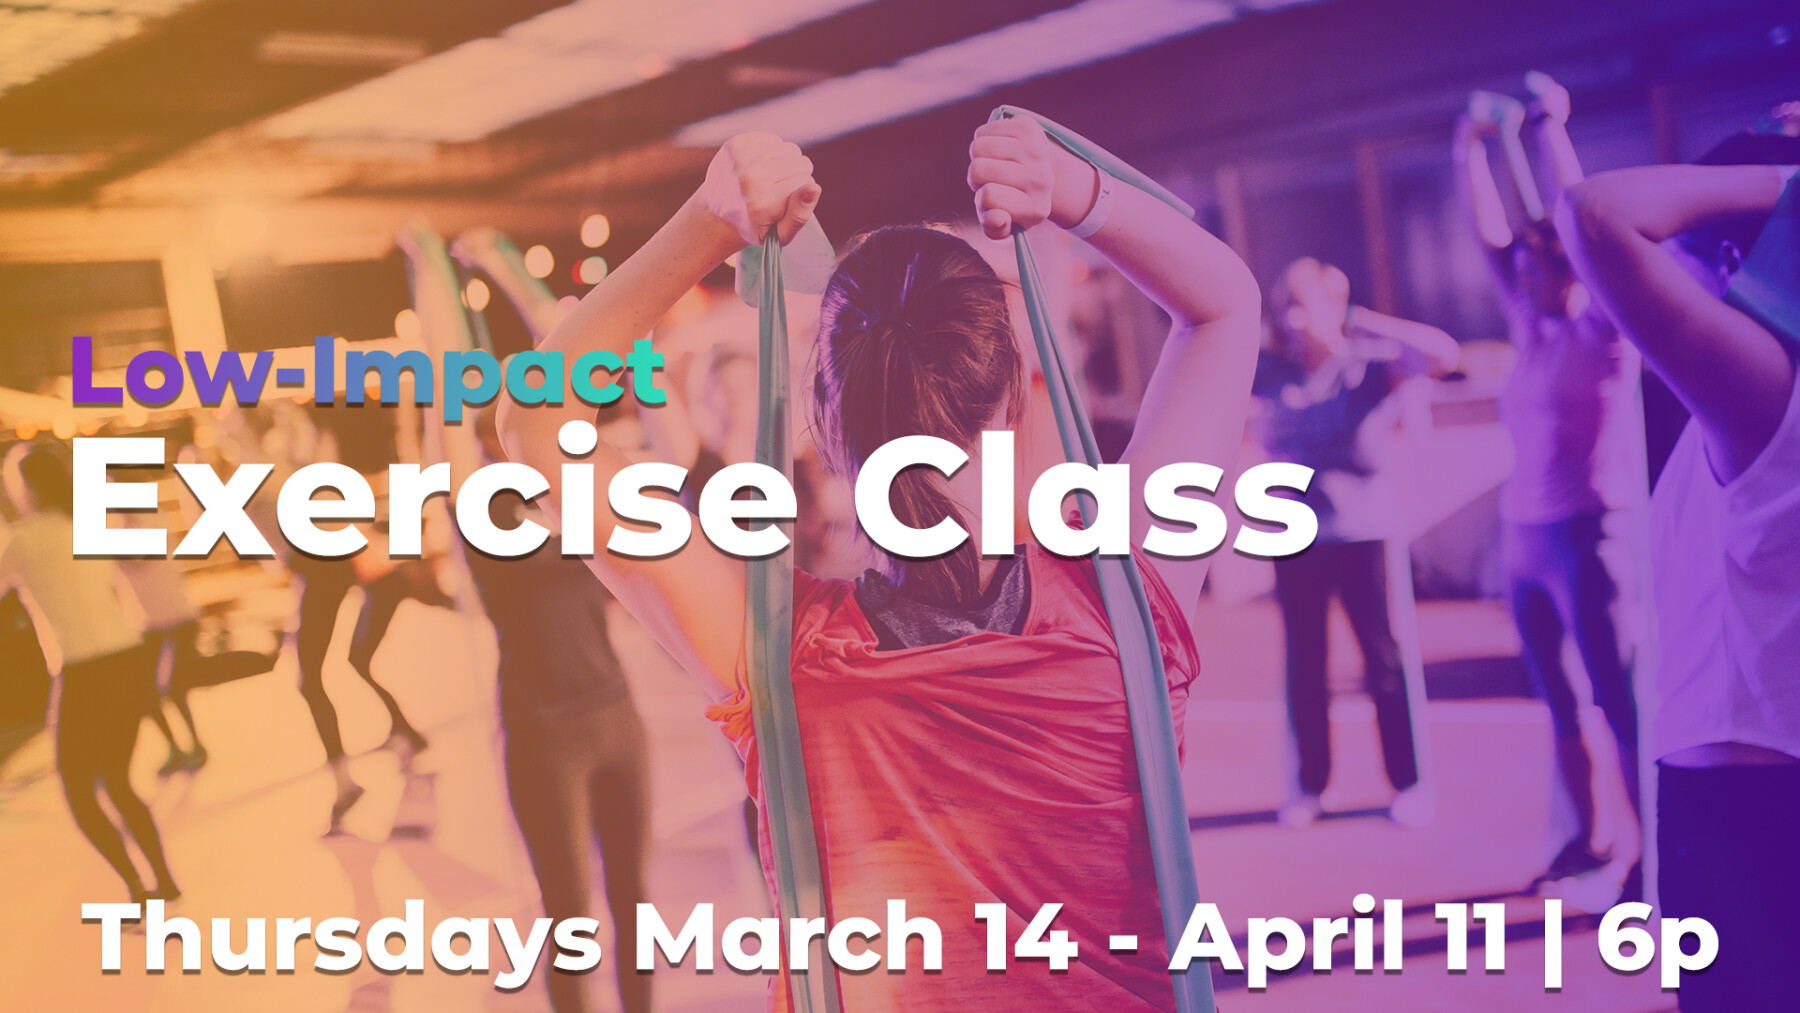 Low Impact Exercise Class